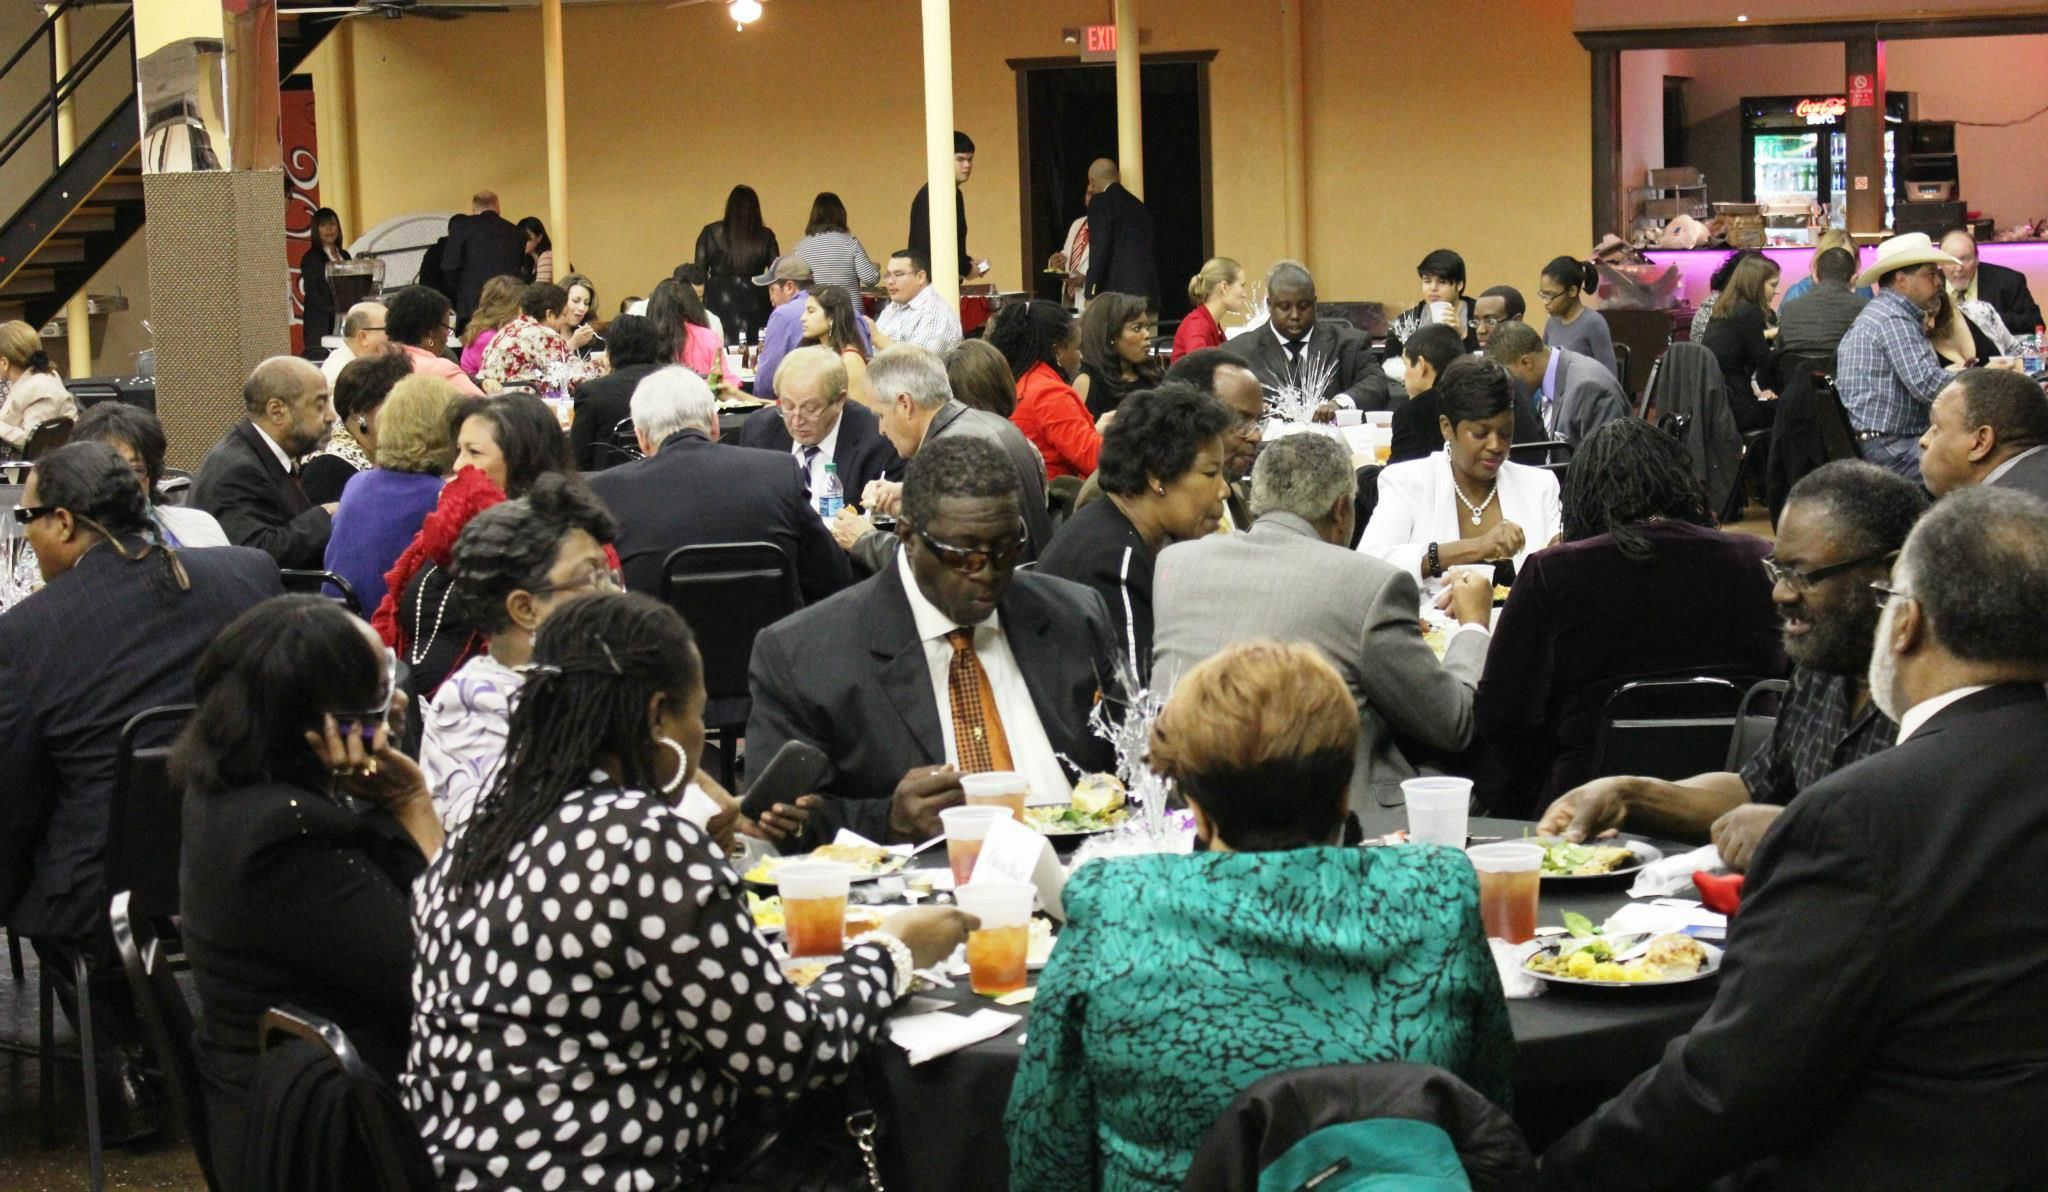 'I Have a Dream' Gala 2013: Fun and Fellowship with the Texas Civil Rights Project - West Texas